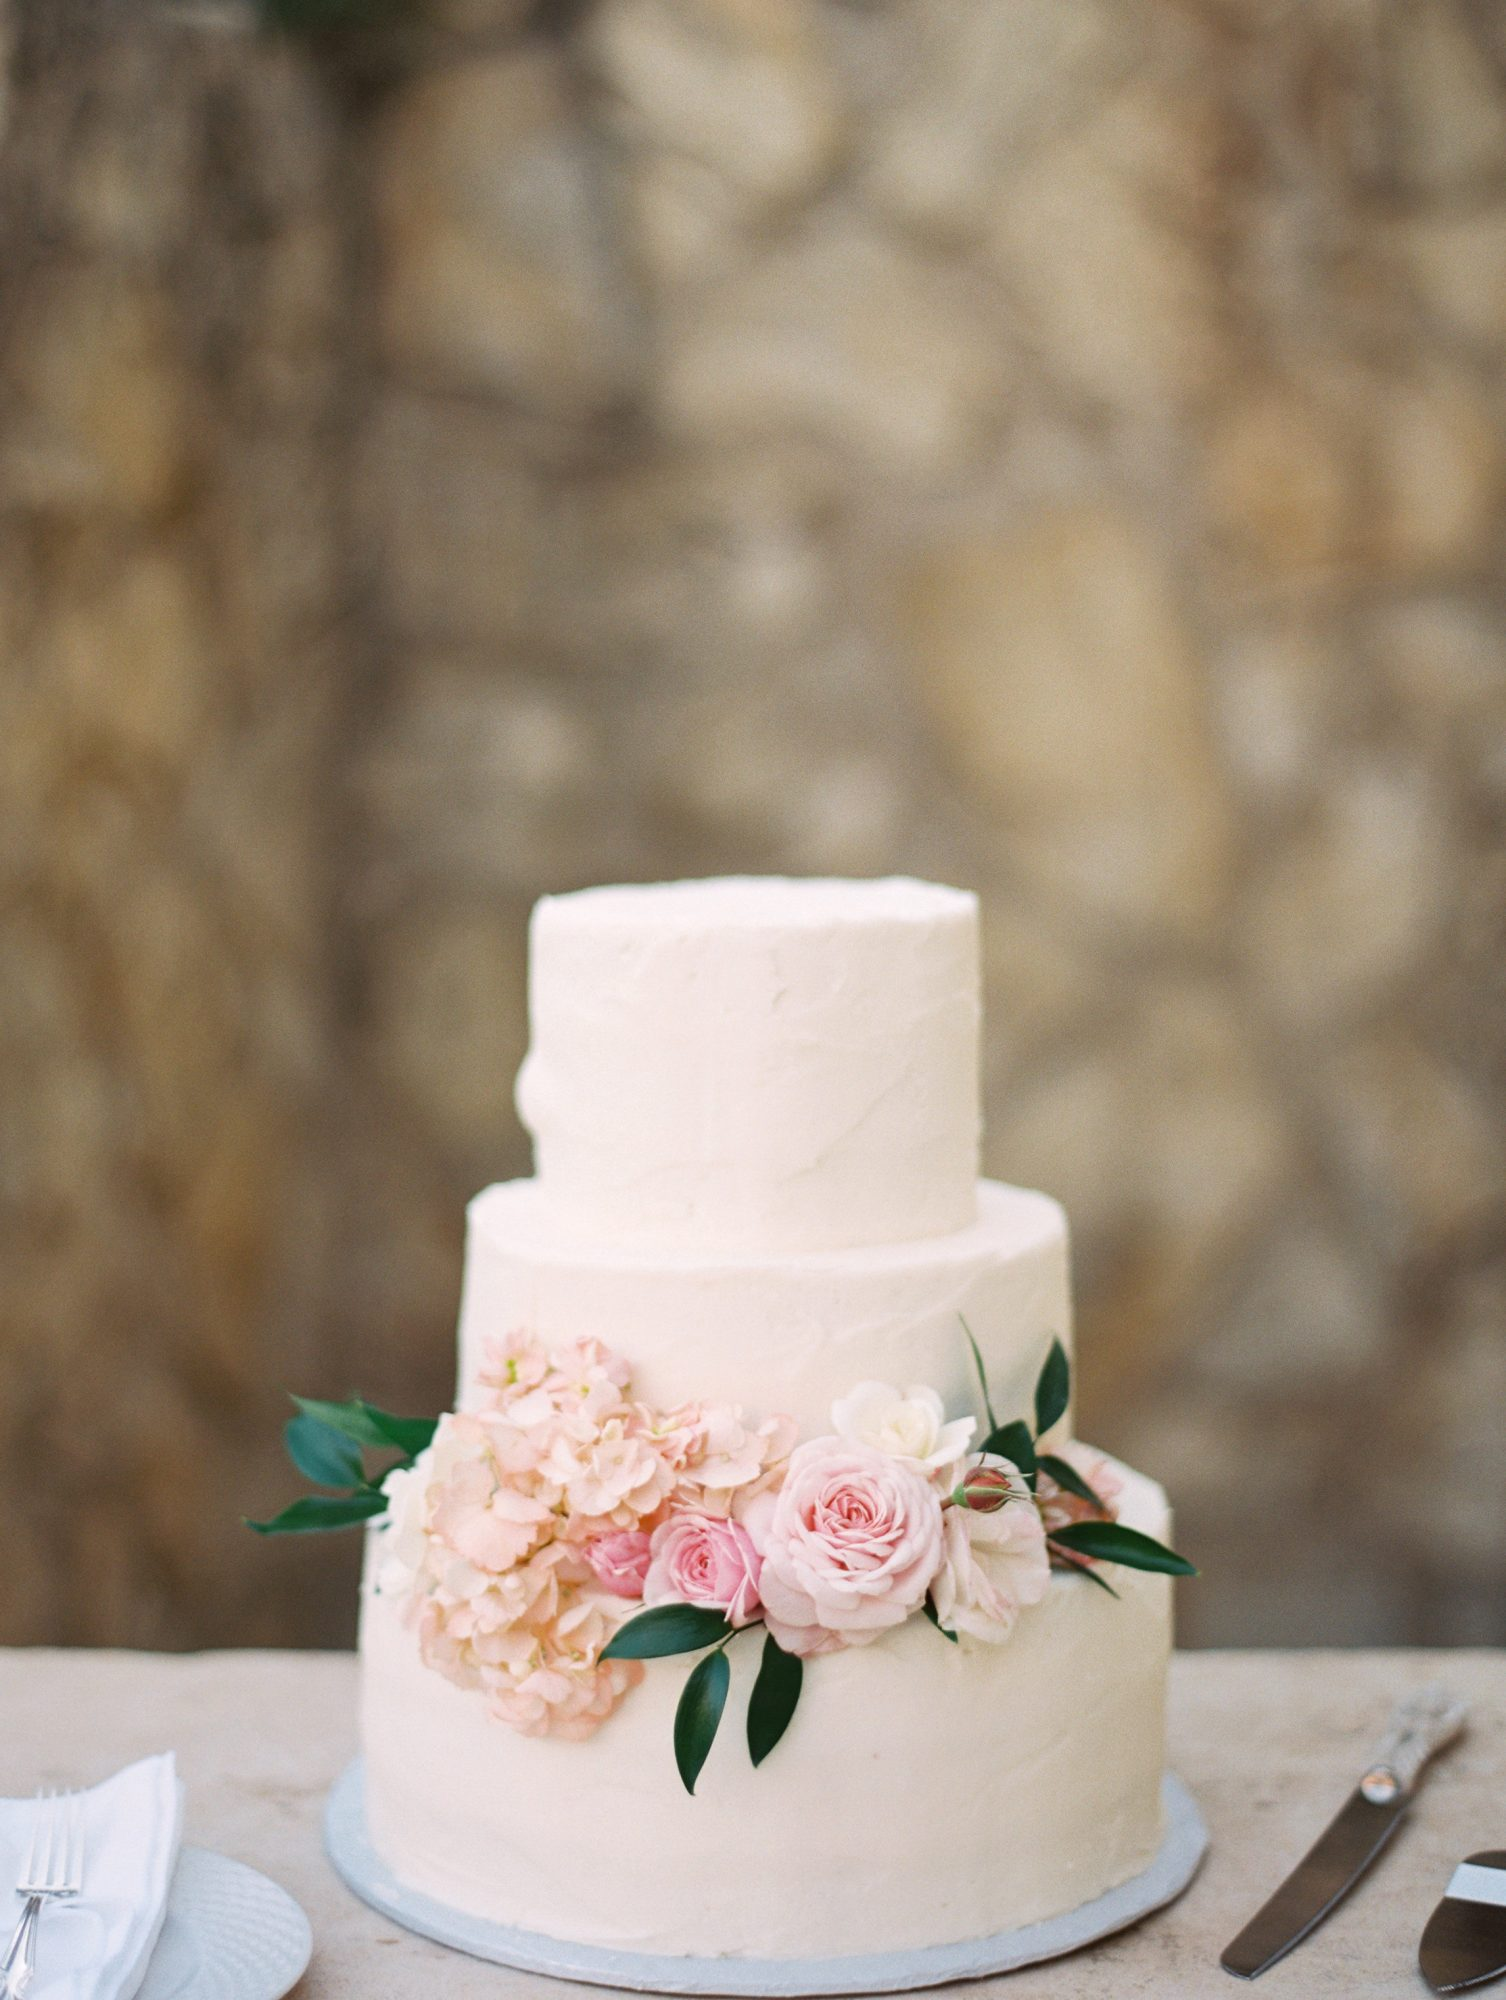 There's nothing like pink flowers to make a wedding dessert feel appropriate for spring.